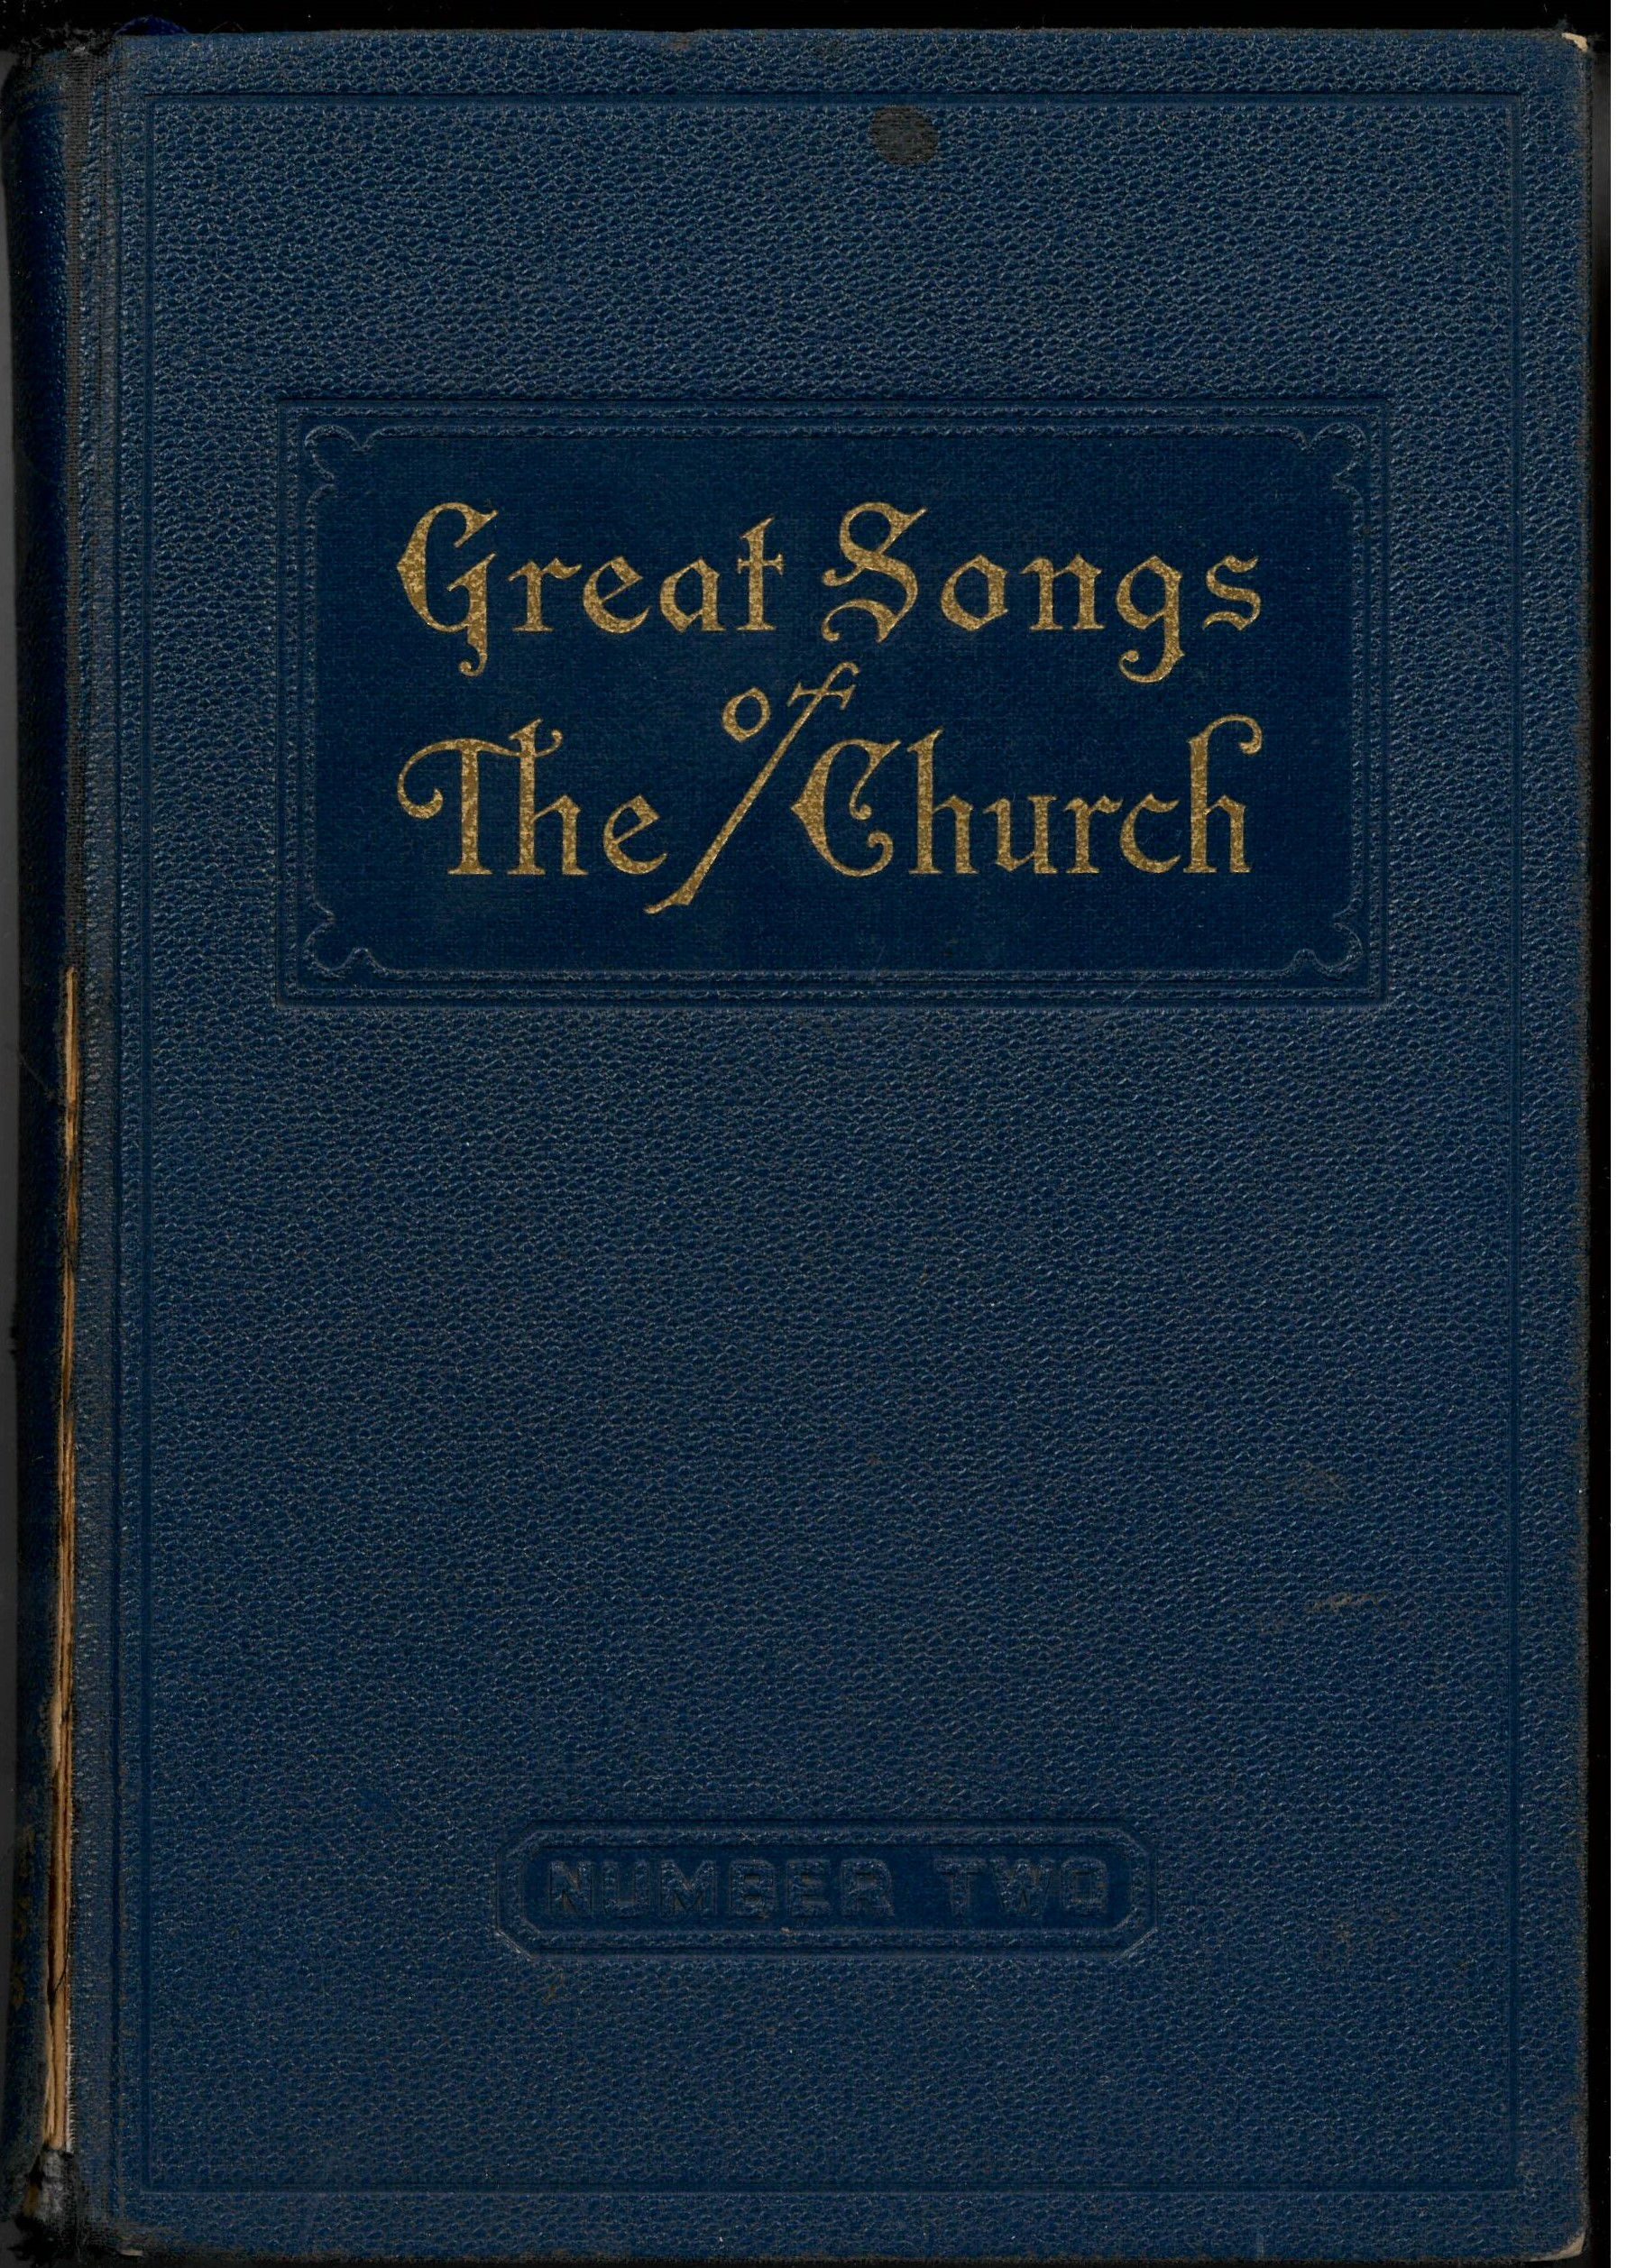 The New Alphabetical Hymnal. Great Songs of the Church Number Two. A Treasury of Six Hundred Sacred Songs Suitable for All Services of the Church. E. L. Jorgenson, Compiler. Great Songs Press: Louisville, 1952. Front cover.